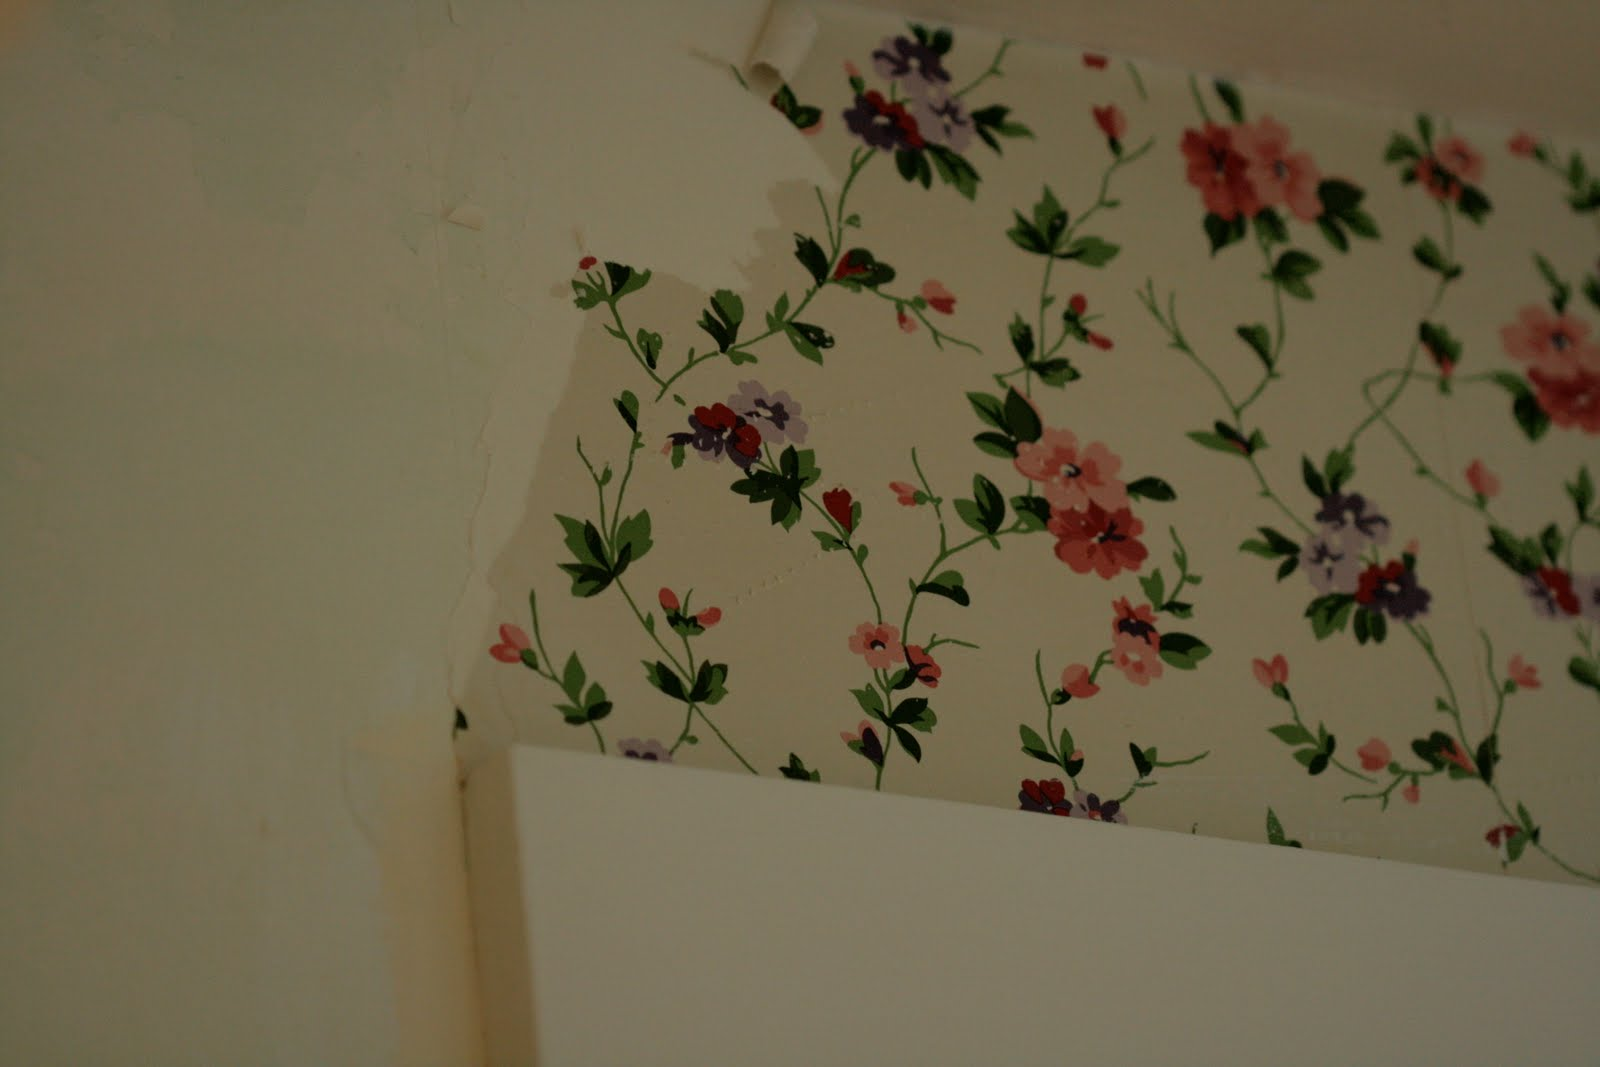 The top layer has a certain Laura Ashley charm. The wallpaper could have